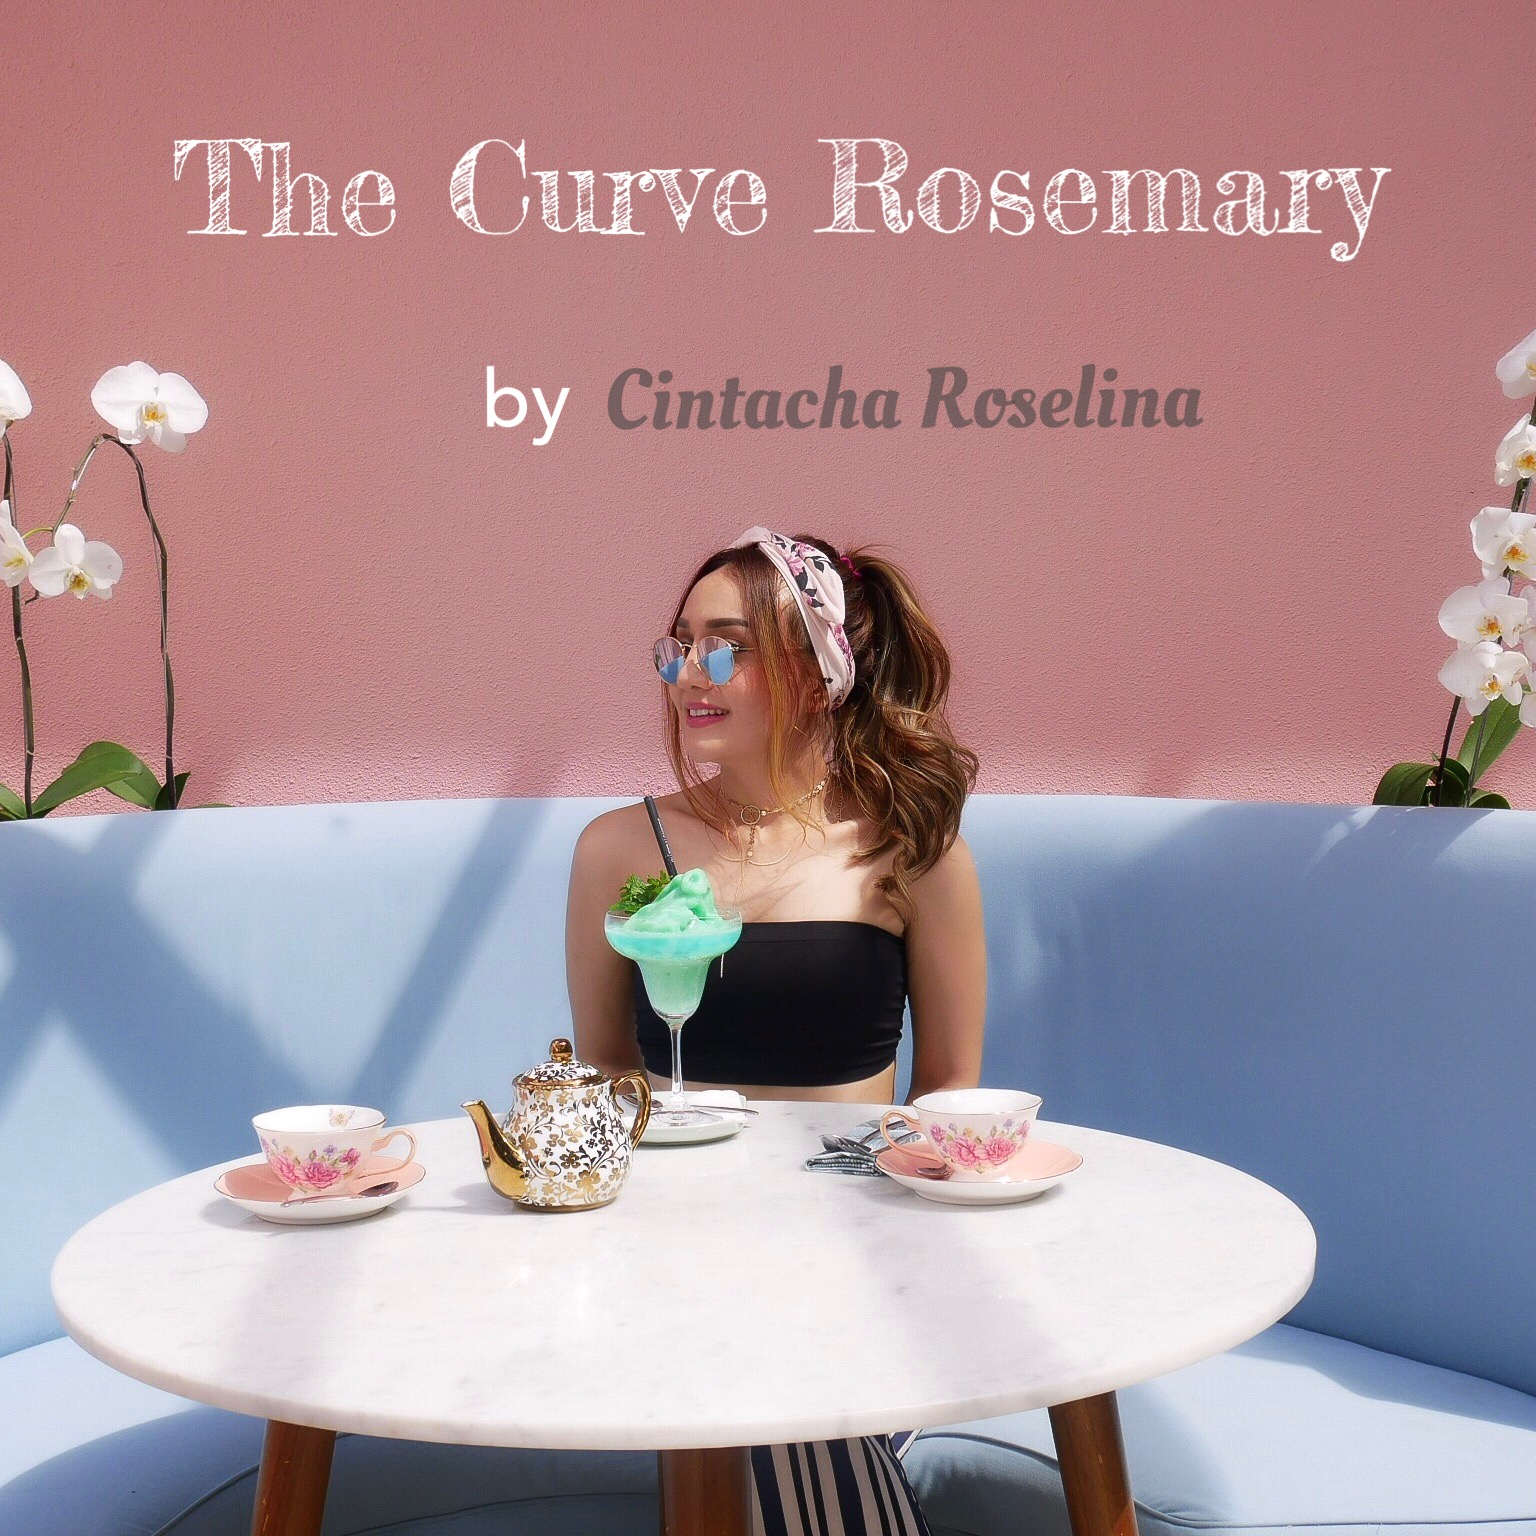 The Curve Rosemary by Cintacha Roselina